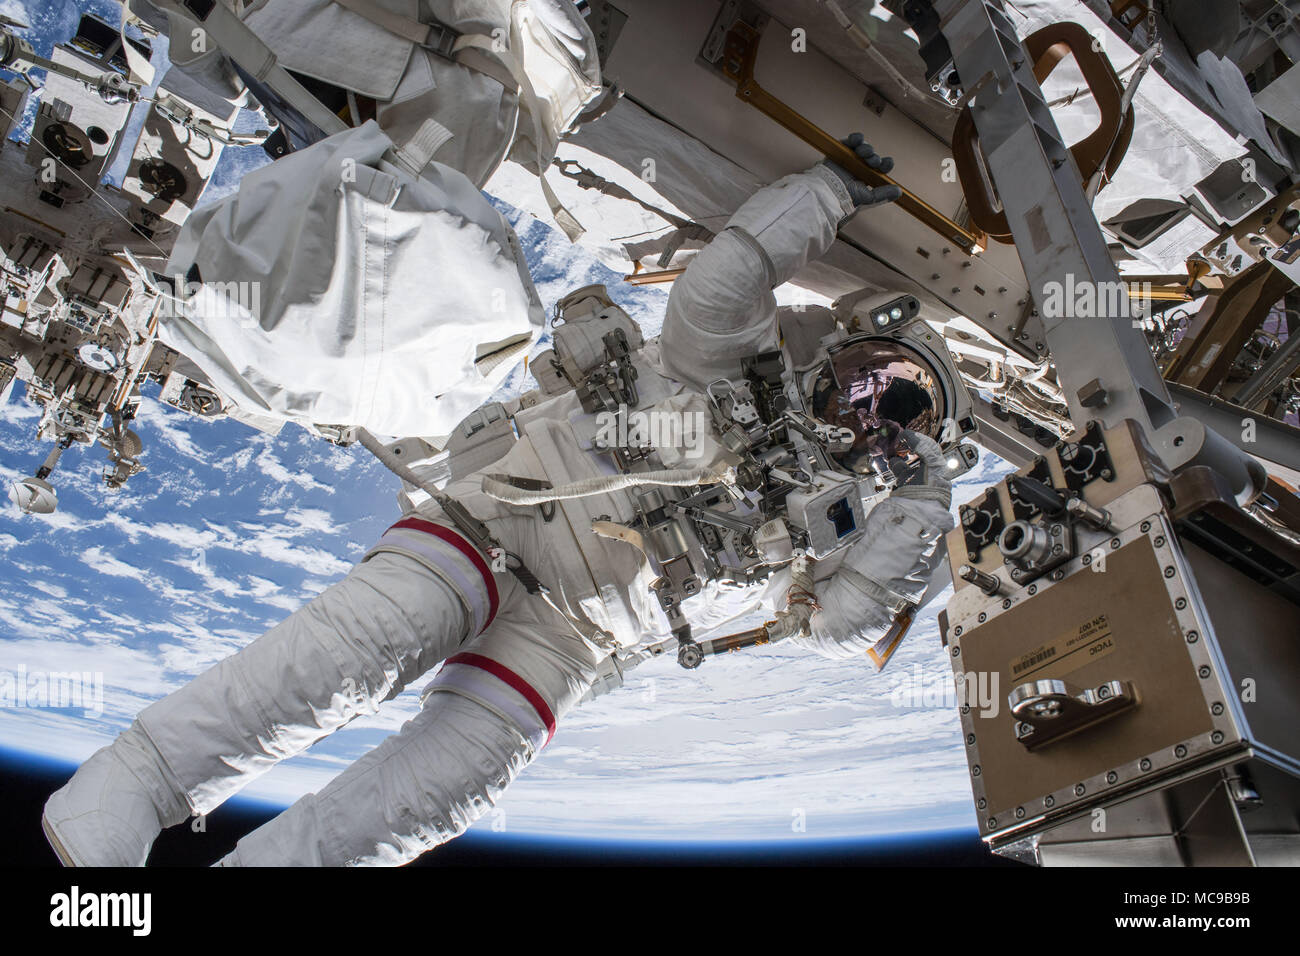 NASA astronaut Drew Feustel outside the International Space Station while conducting a spacewalk, March 29, 2018. - Stock Image